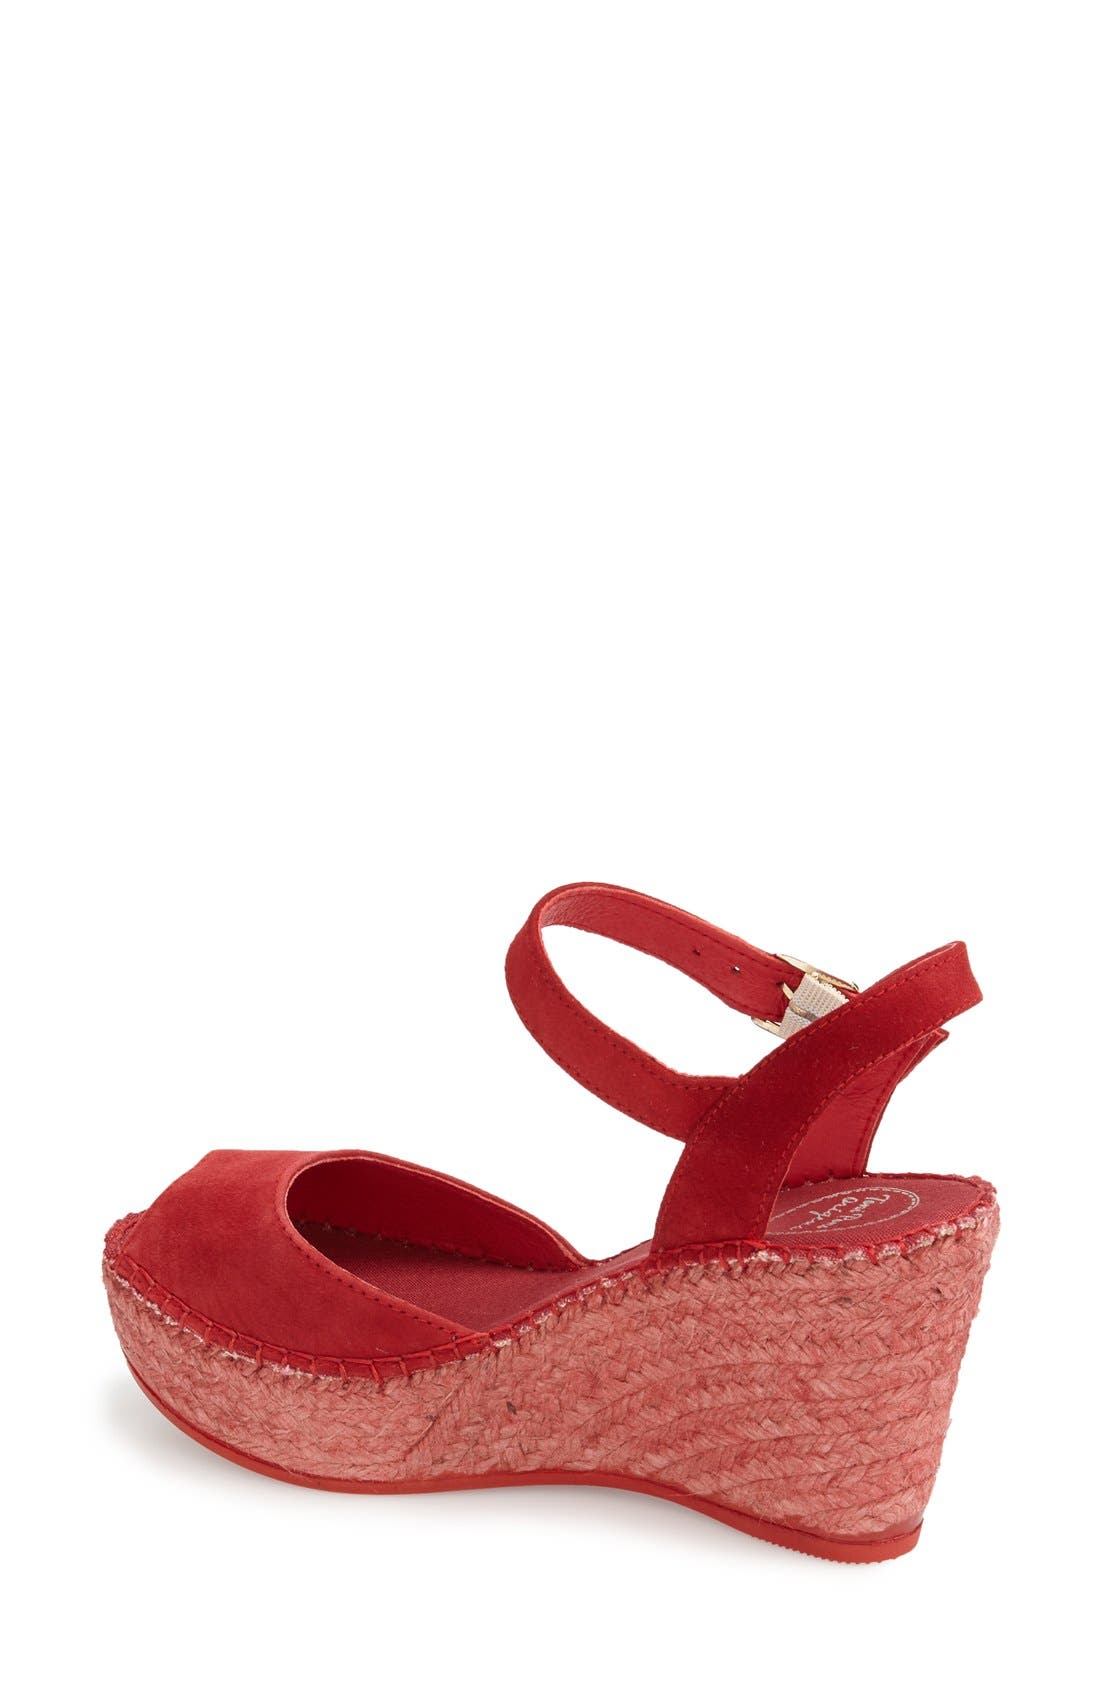 Laura Espadrille Wedge Sandal,                             Alternate thumbnail 2, color,                             RED SUEDE